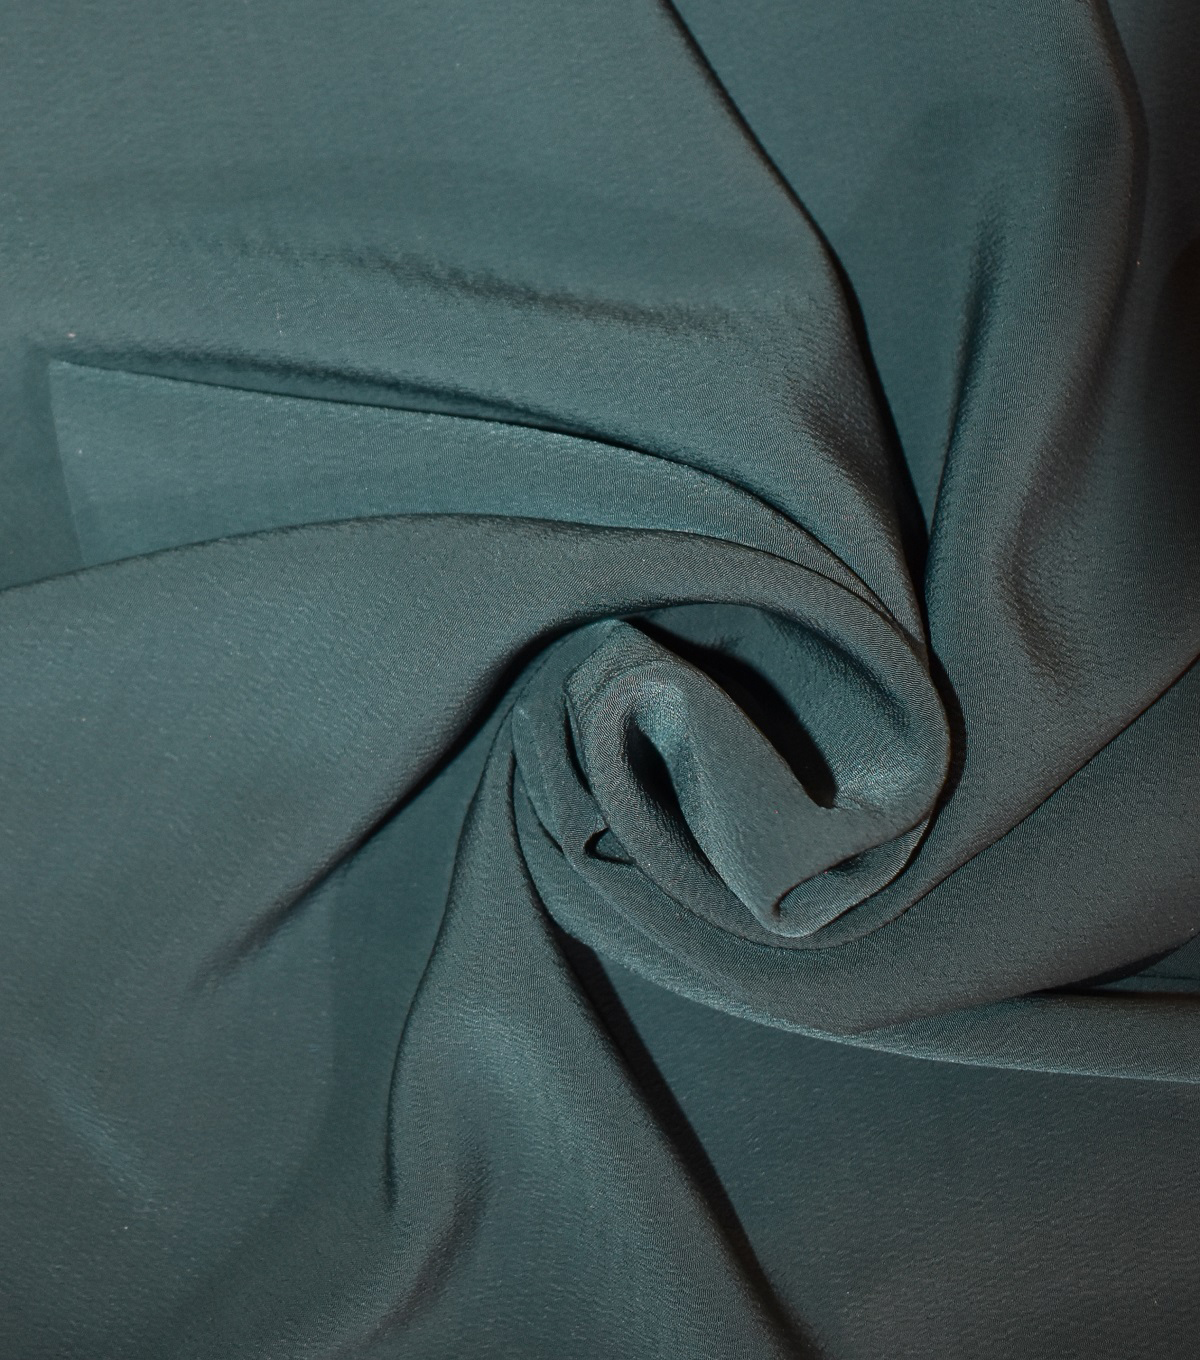 Silky Solids Textured Polyester Crepe Fabric-Solids, Sycamore